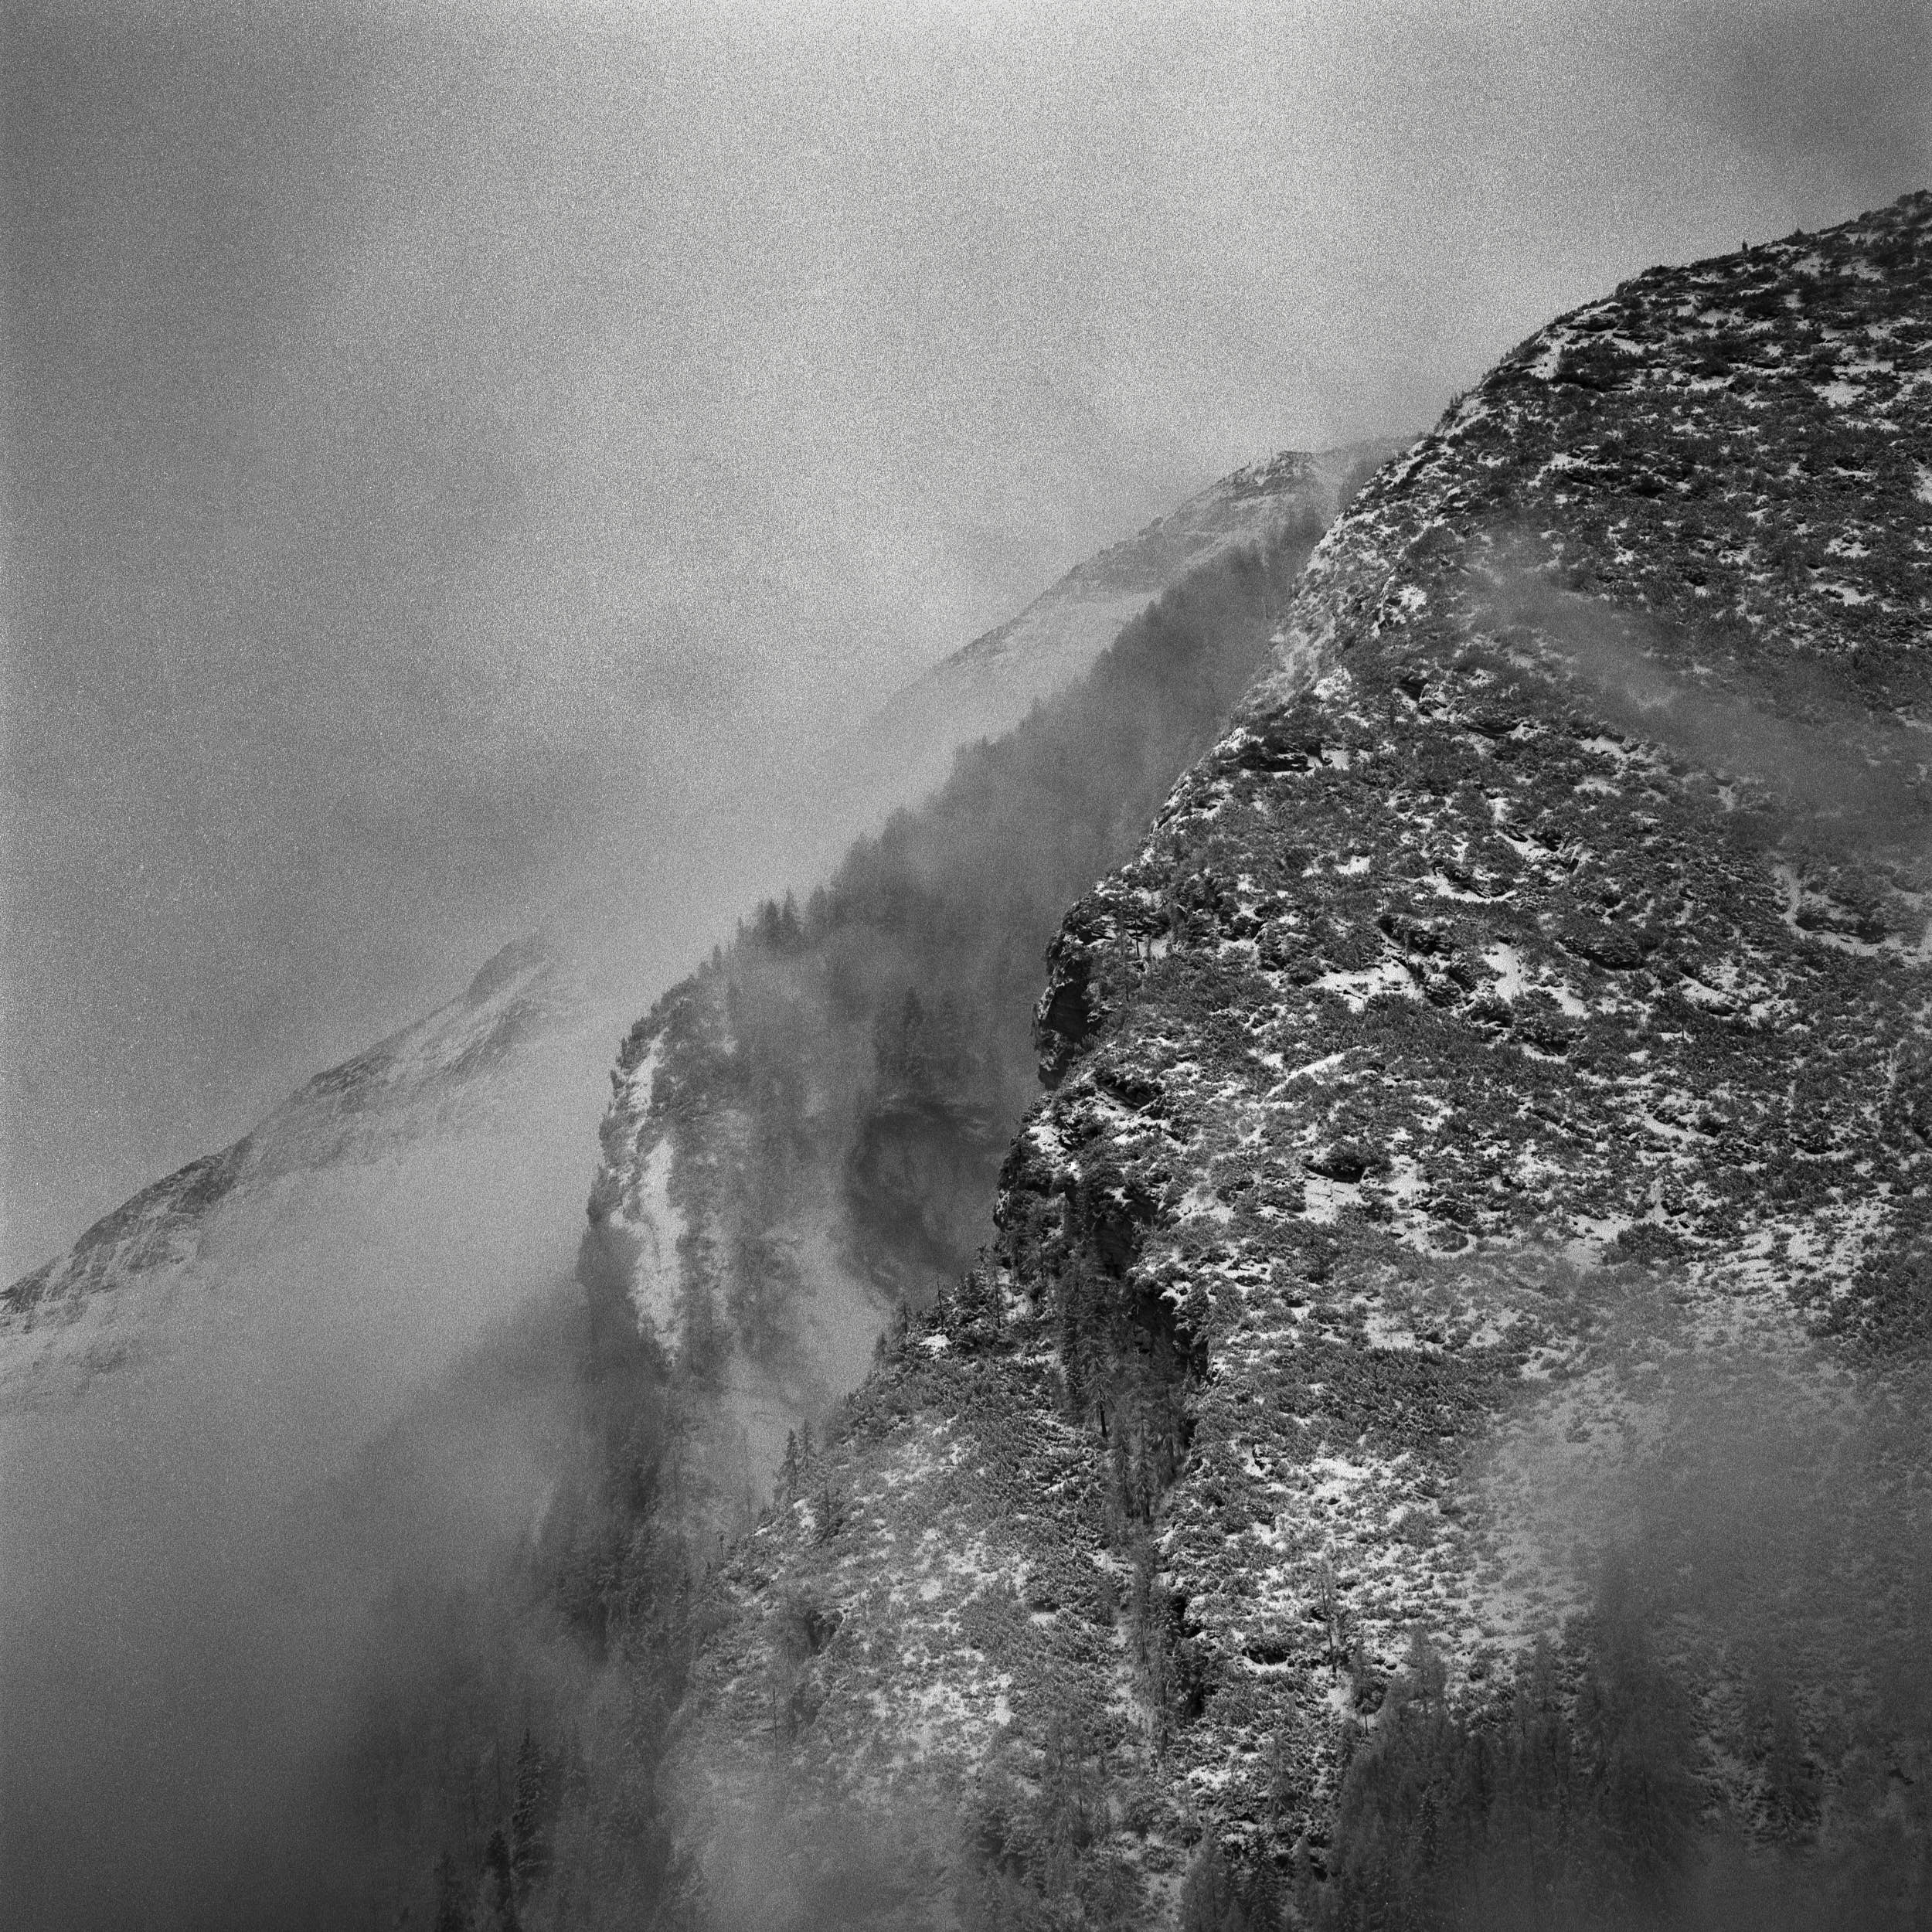 Black and white medium format film photography: detail of a steep mountain in fog.